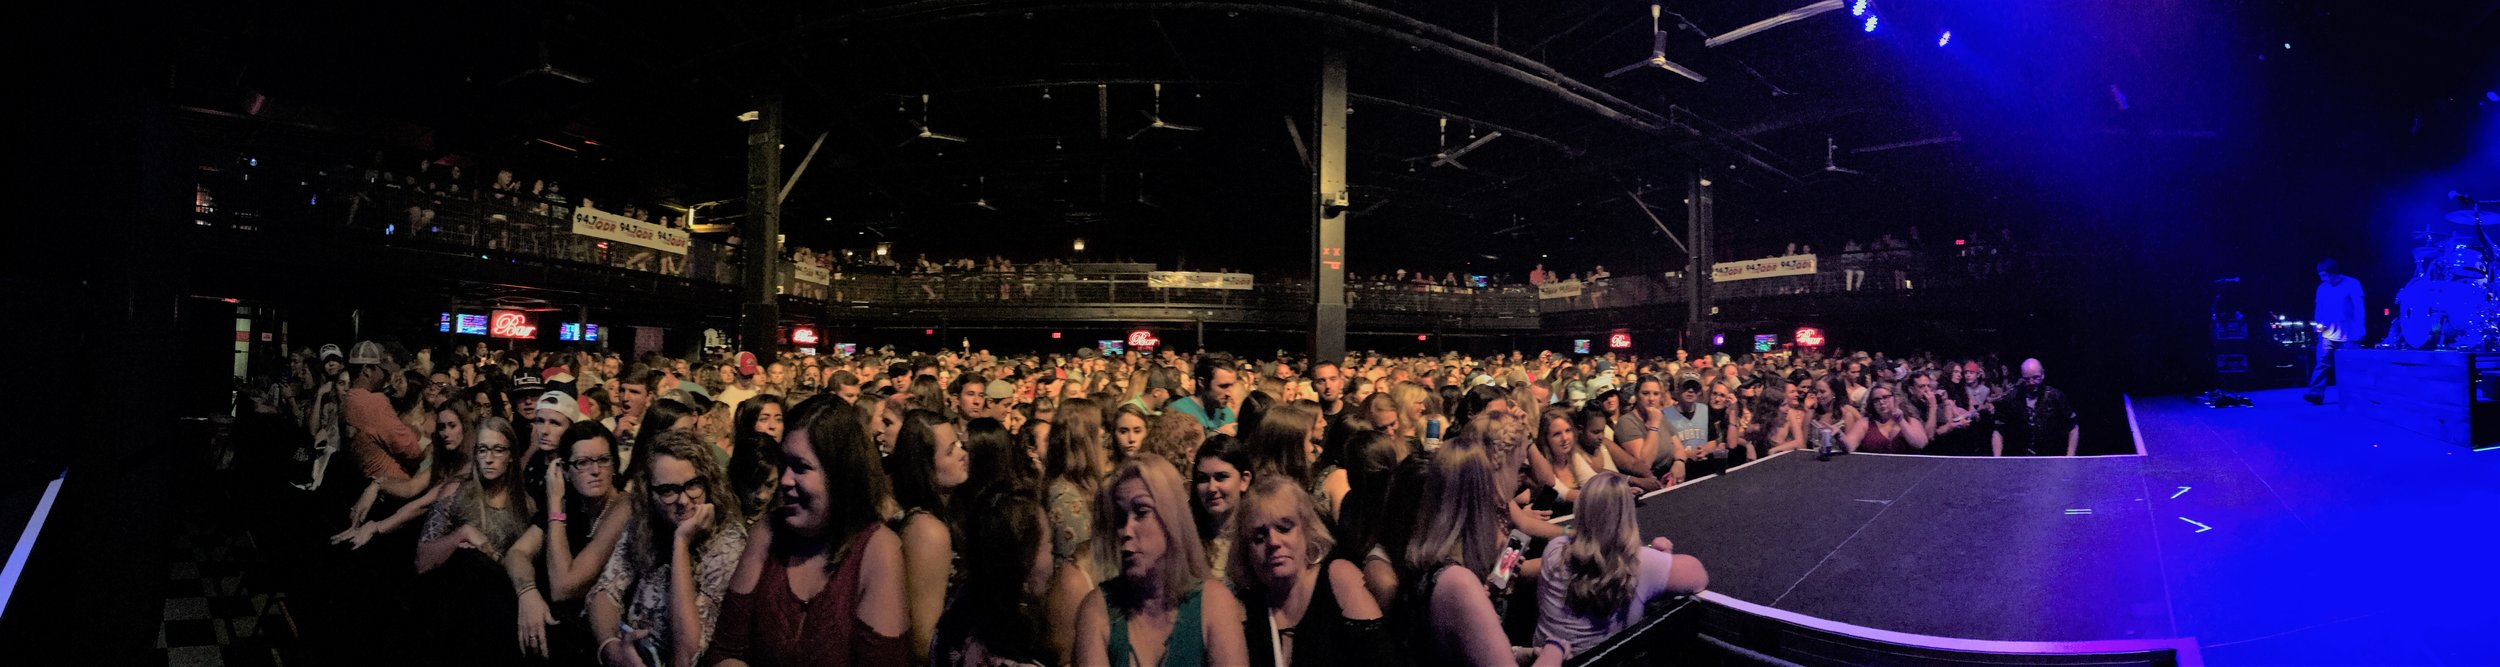 iphone capture of the crowd getting ready for Chase Rice to come on.